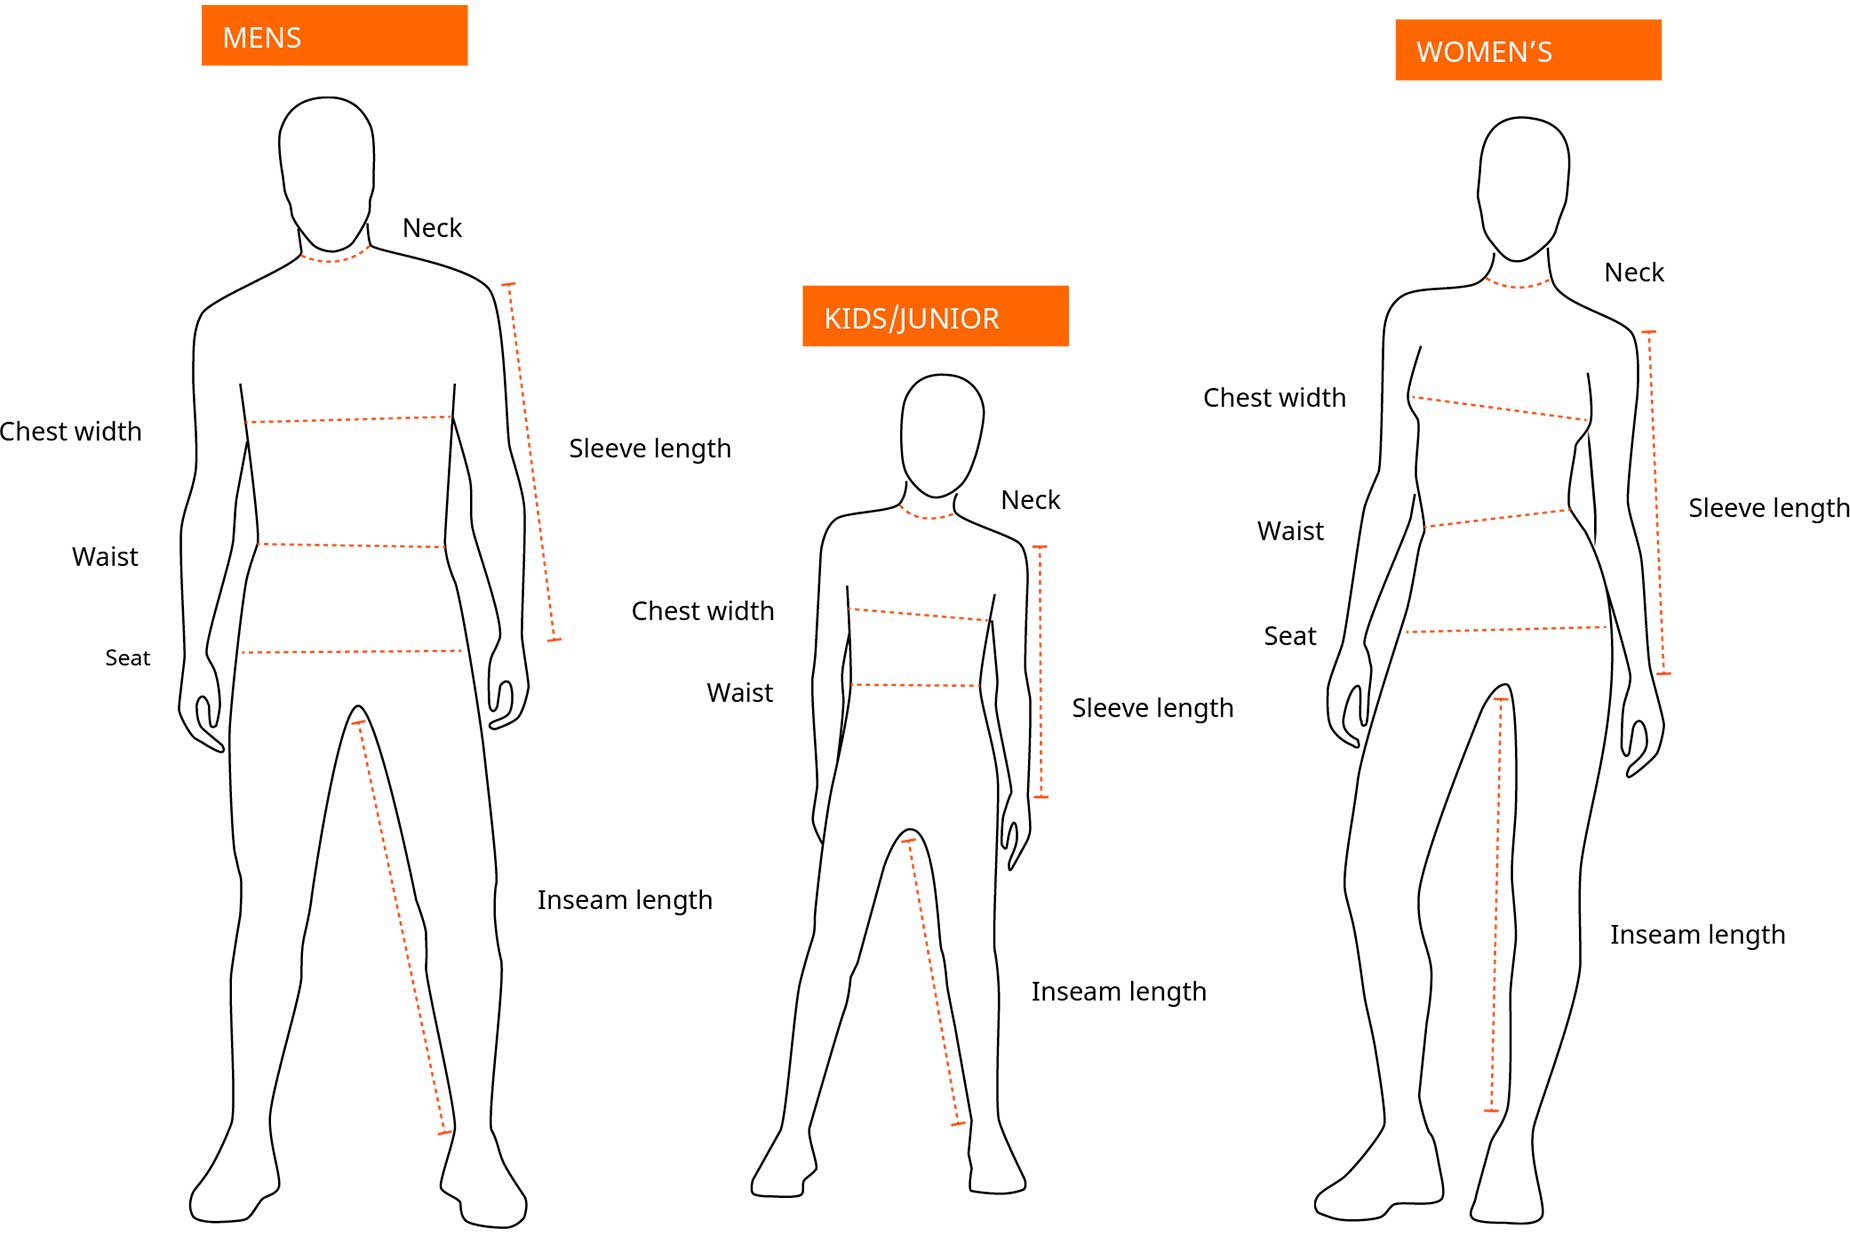 pinewood_body-measure-size-guide_illustrations_en